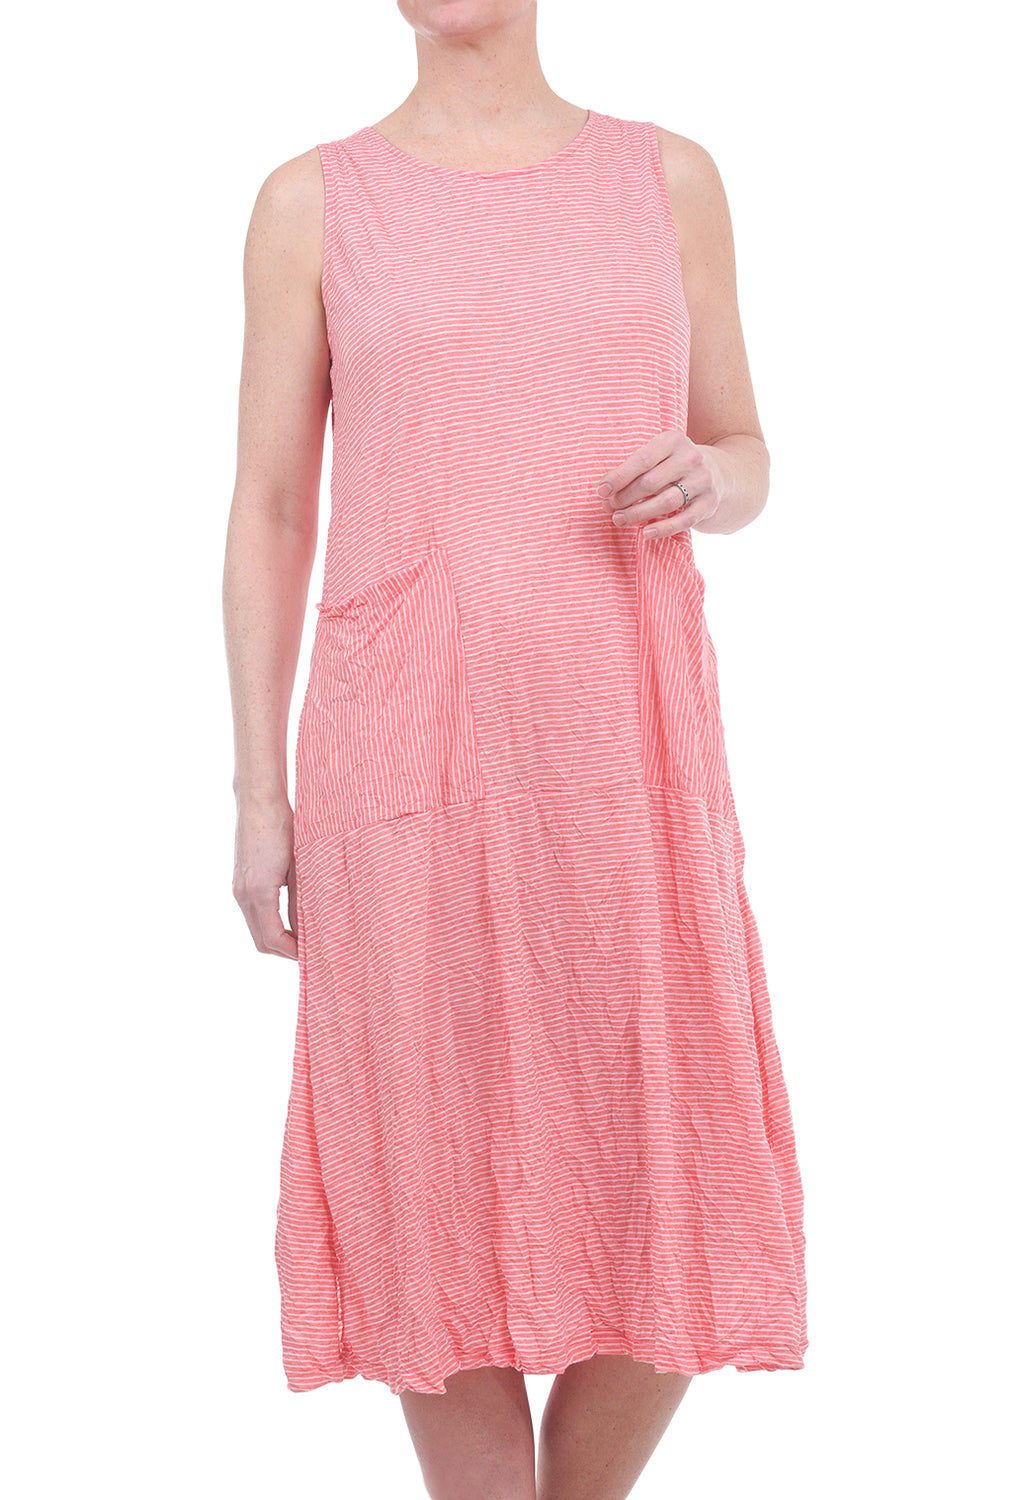 Comfy USA Crinkle Rachel Dress, Coral Stripe